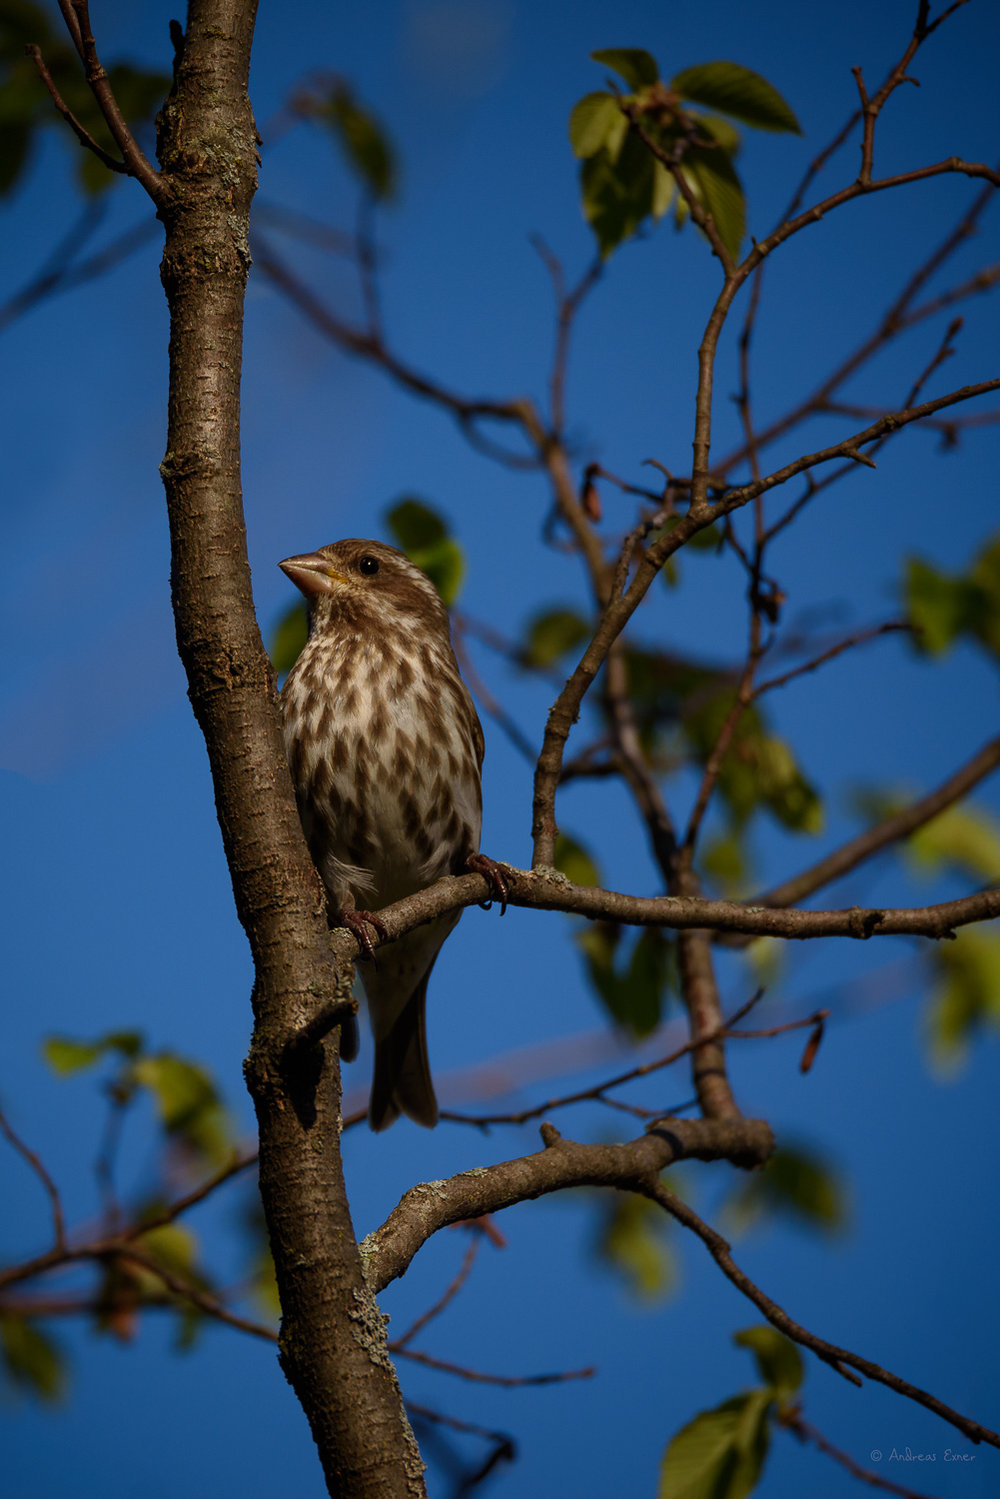 Female Purple Finch, has still not left for their summer grounds up in northern Minnesota and Canada.